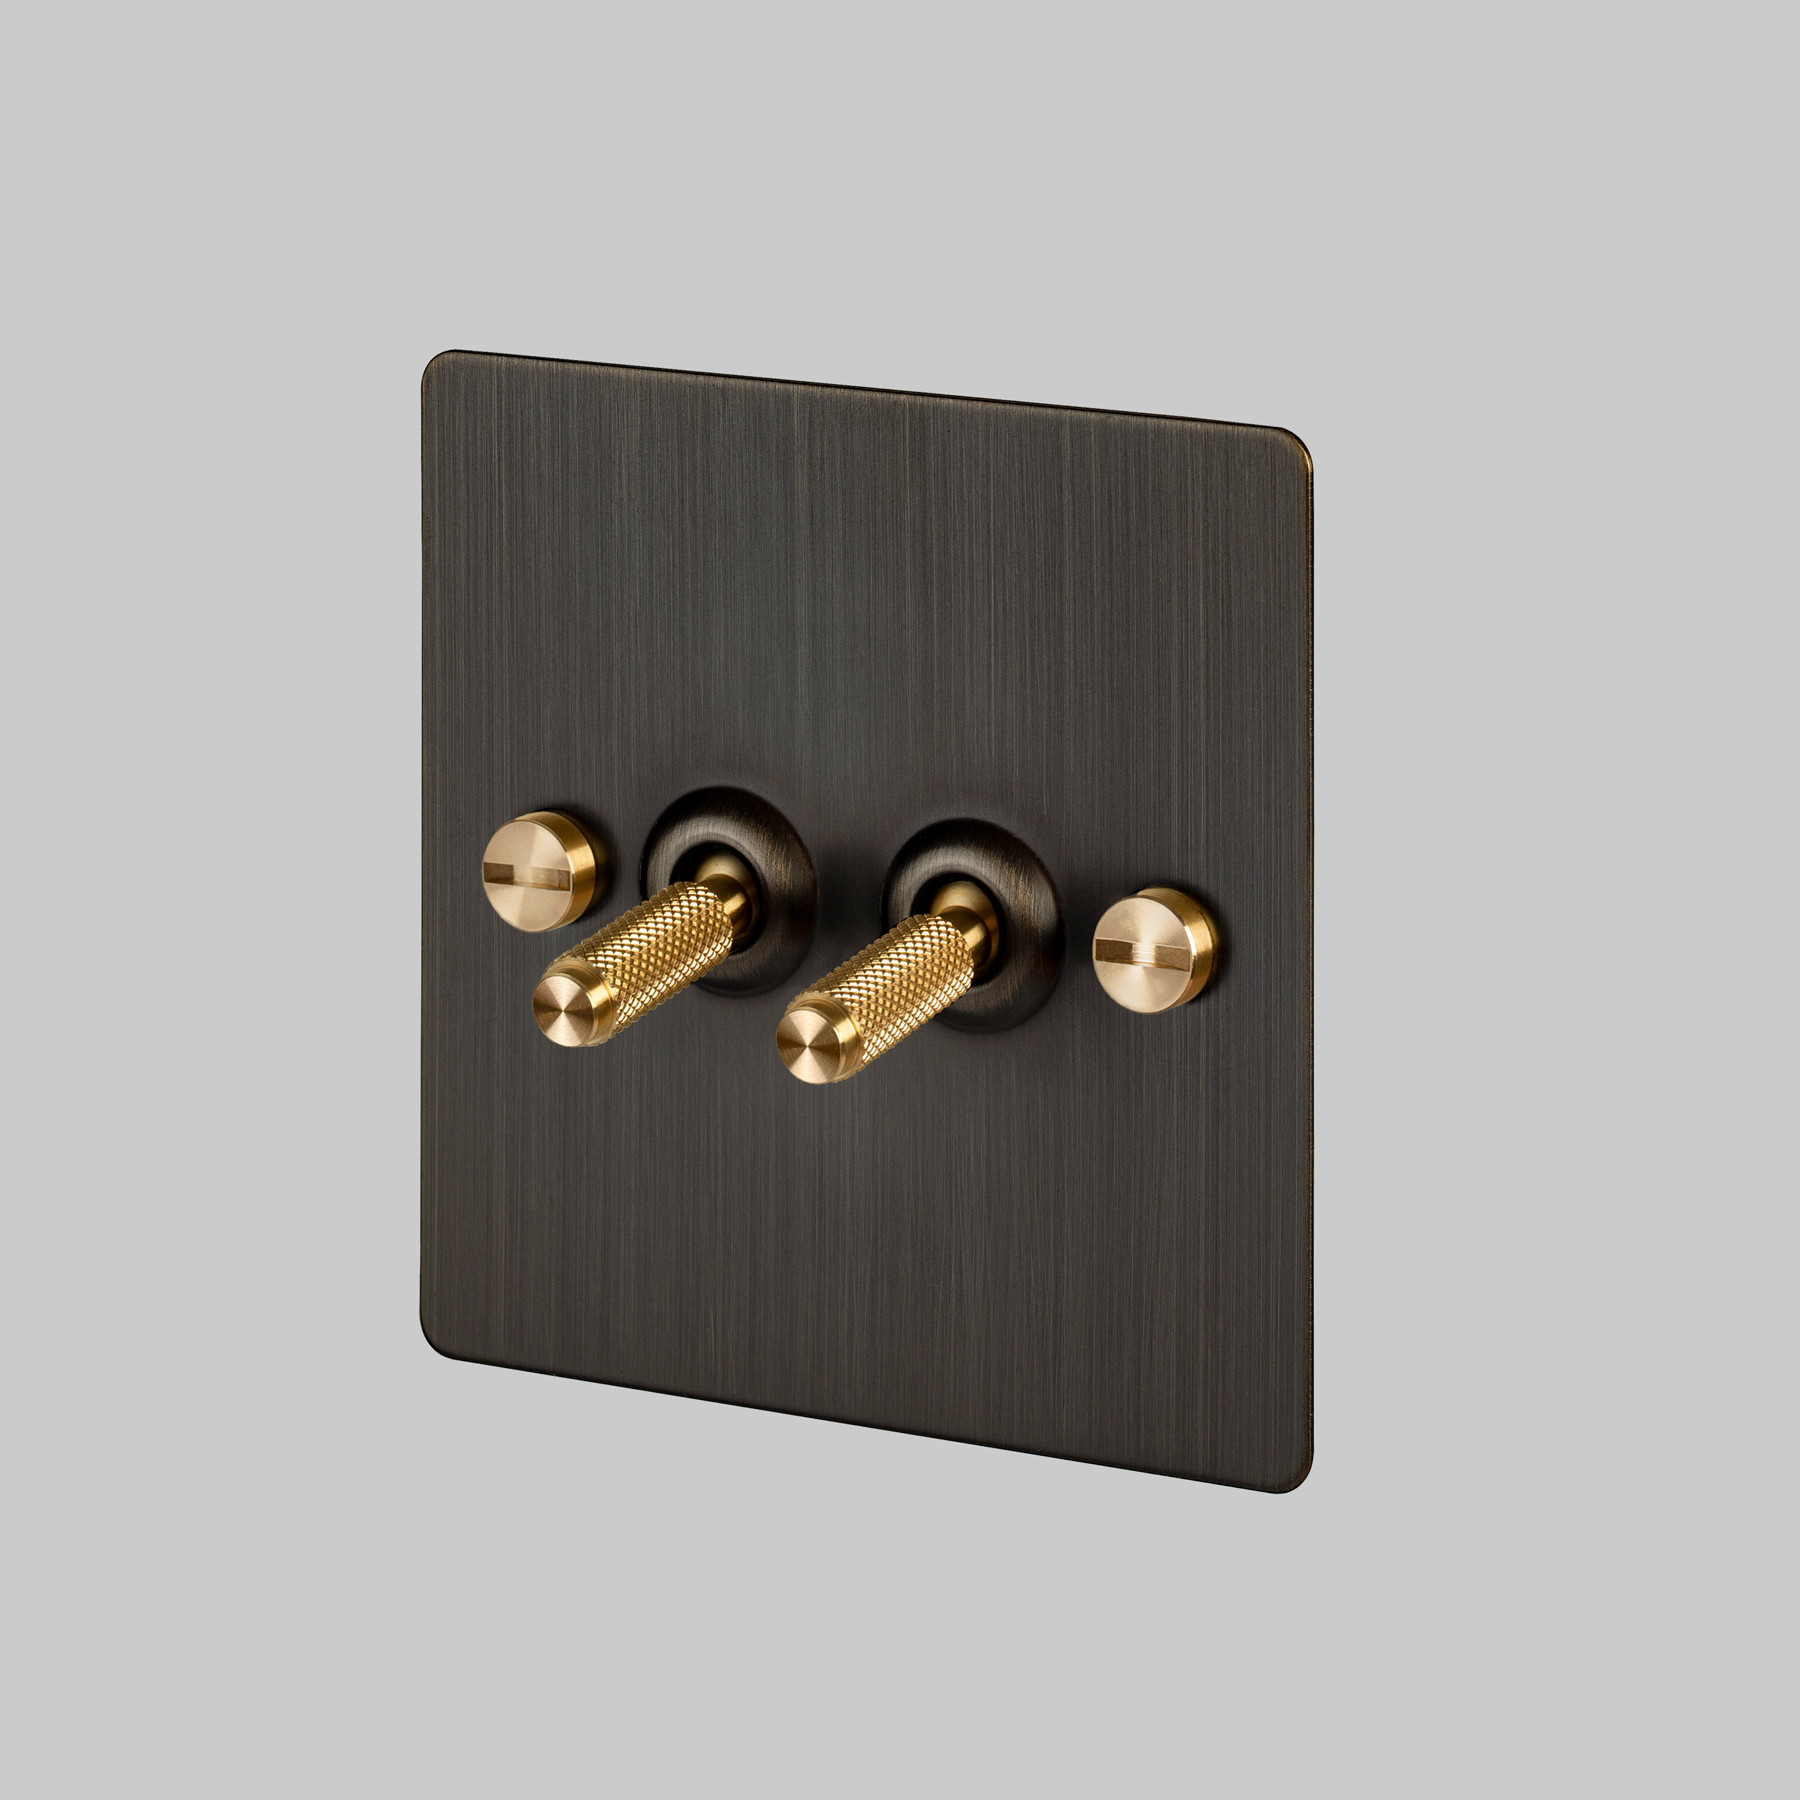 2G TOGGLE SWITCH / SMOKED BRONZE / BRASS